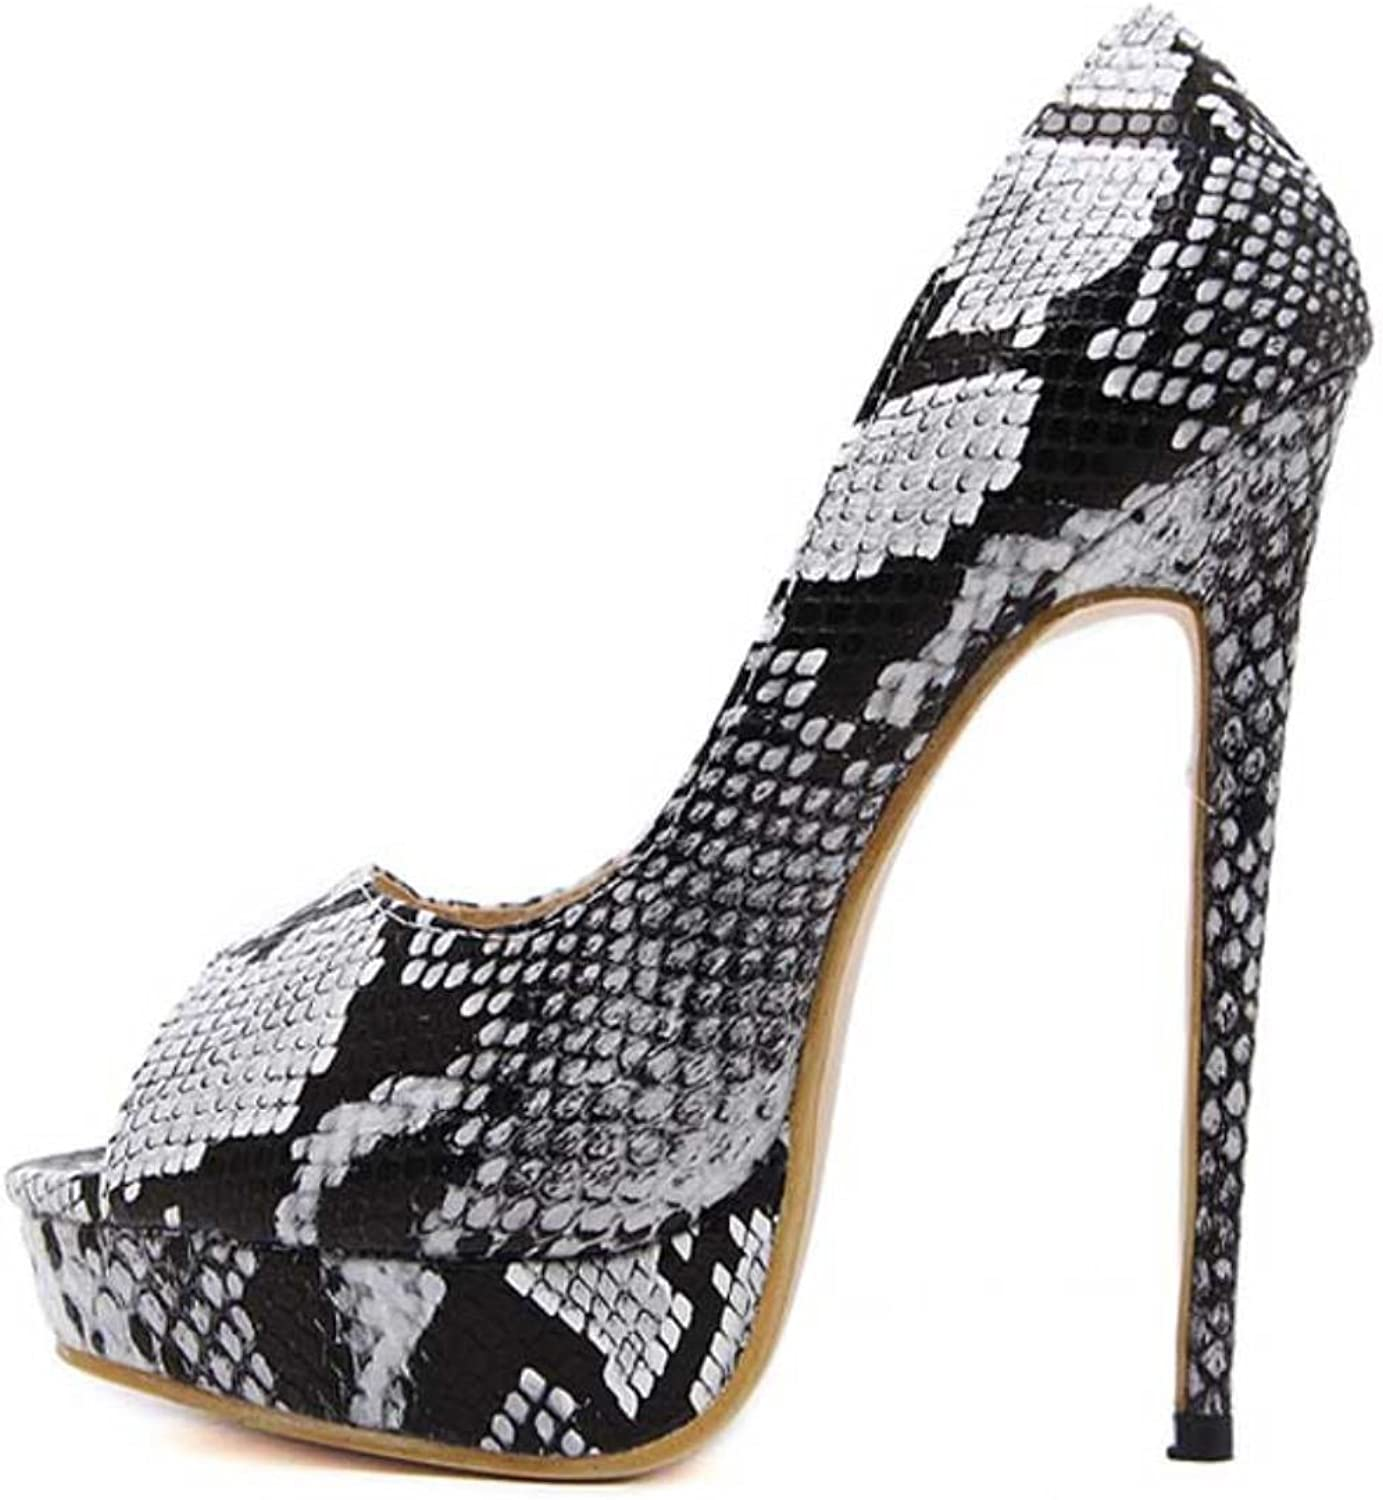 Eilyken Snake Printed c Pumps shoes Sexy High Heels New Spring Peep Toe Party Women Pumps shoes